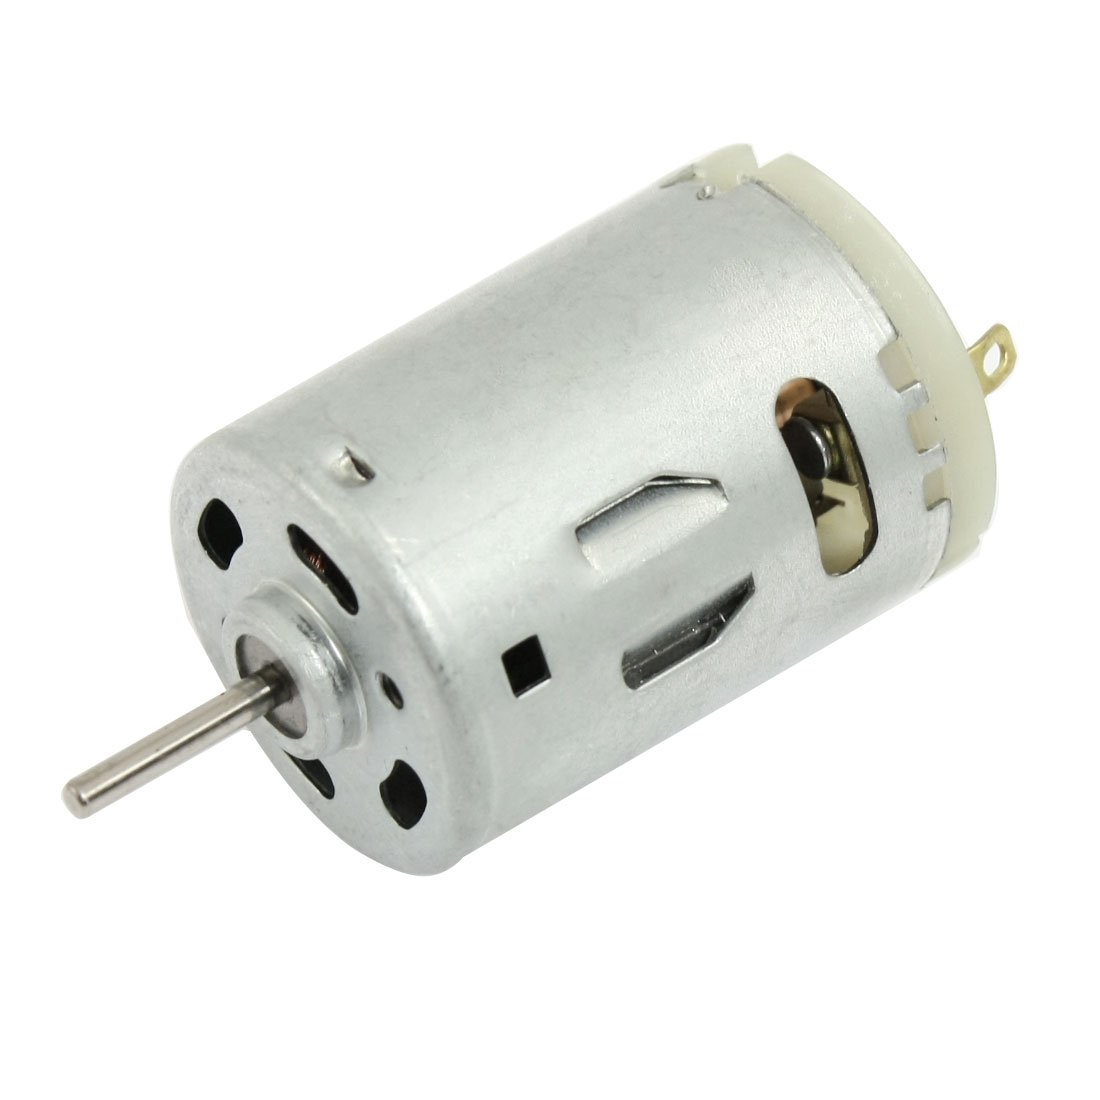 12V DC 6000RPM Torque Magnetic Mini Electric Motor for DIY Toys Cars LW